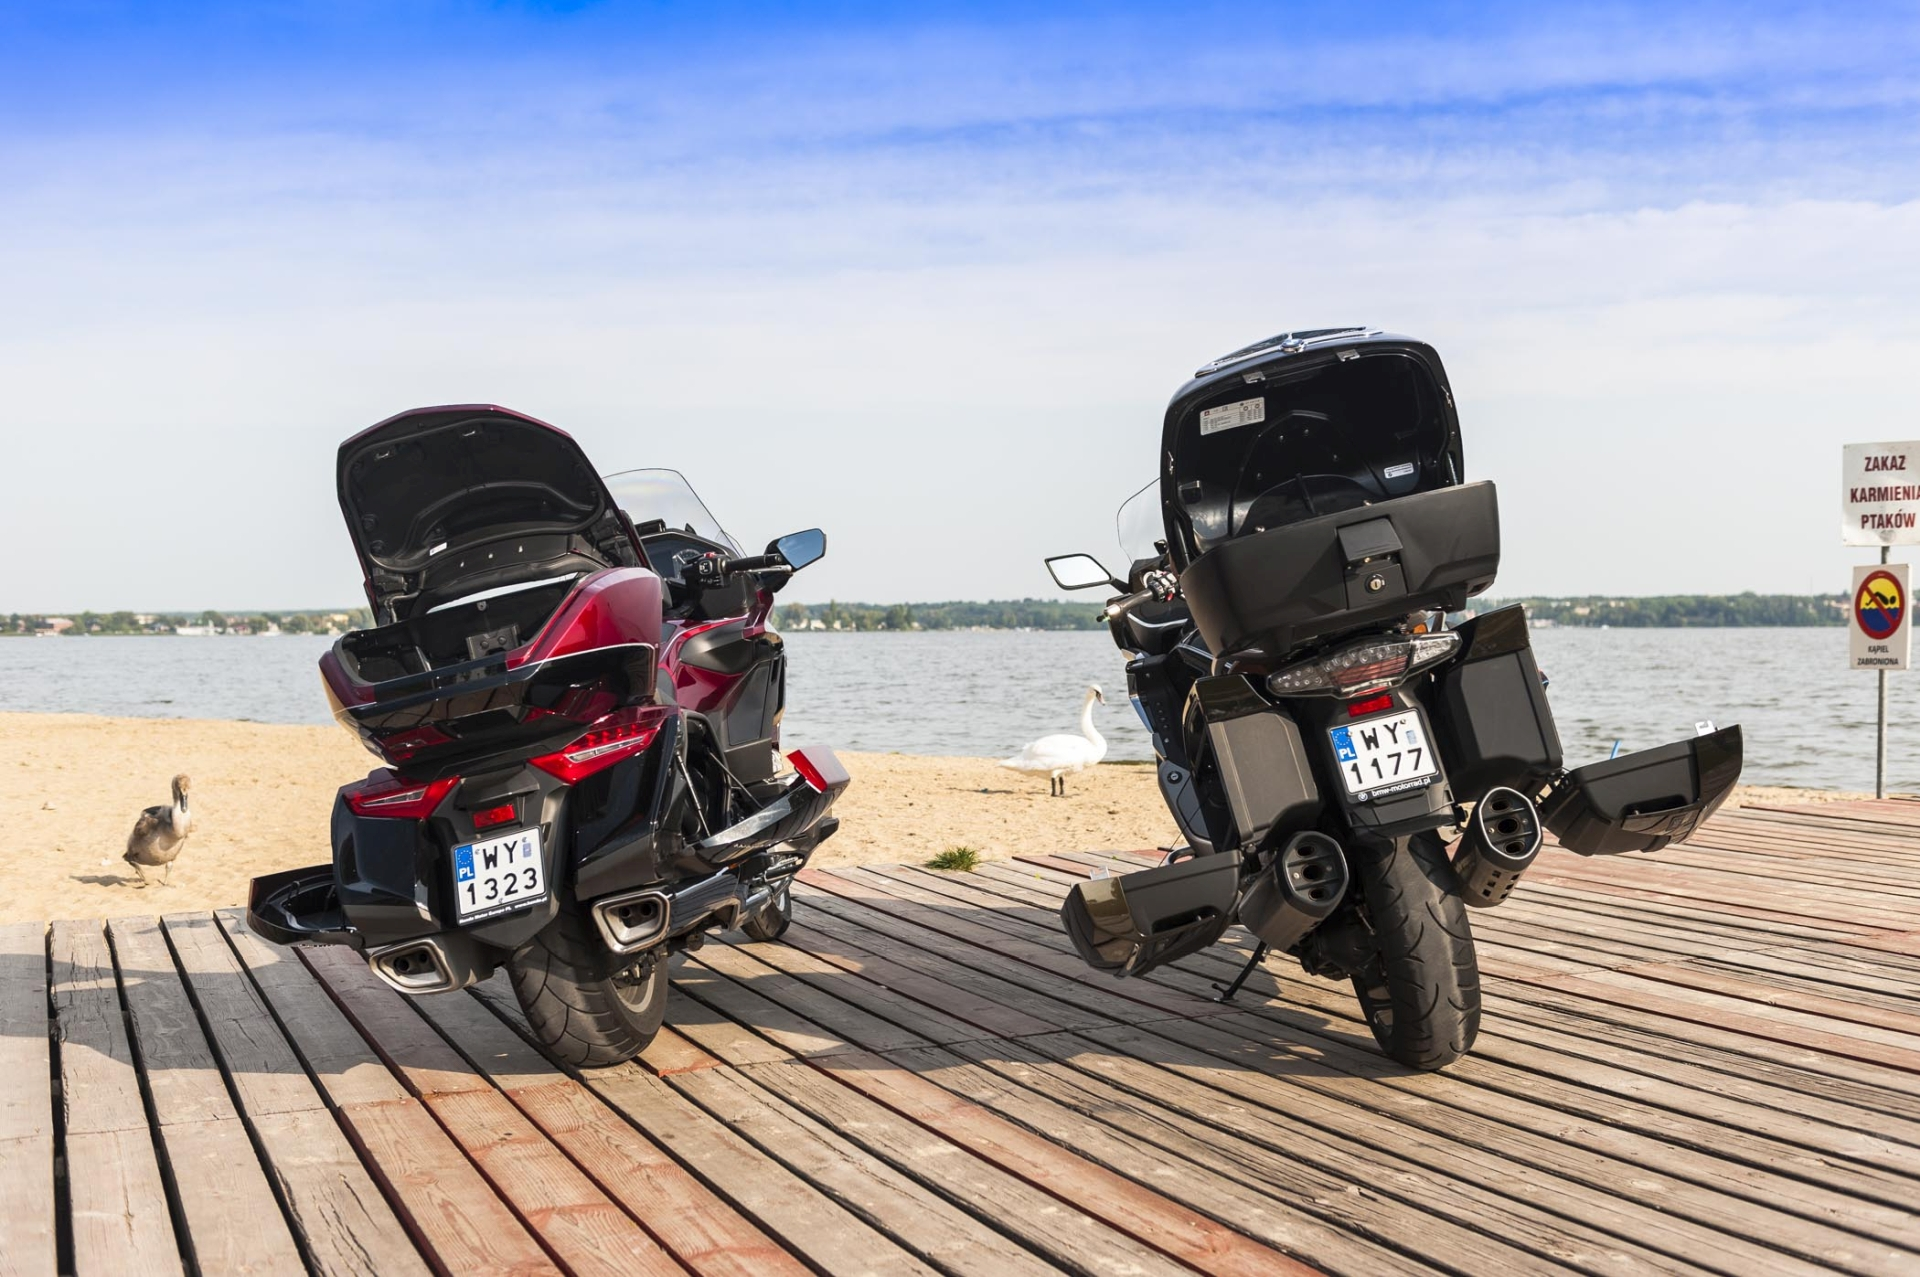 Honda GL1800 GoldWing vs BMW K 1600GTL